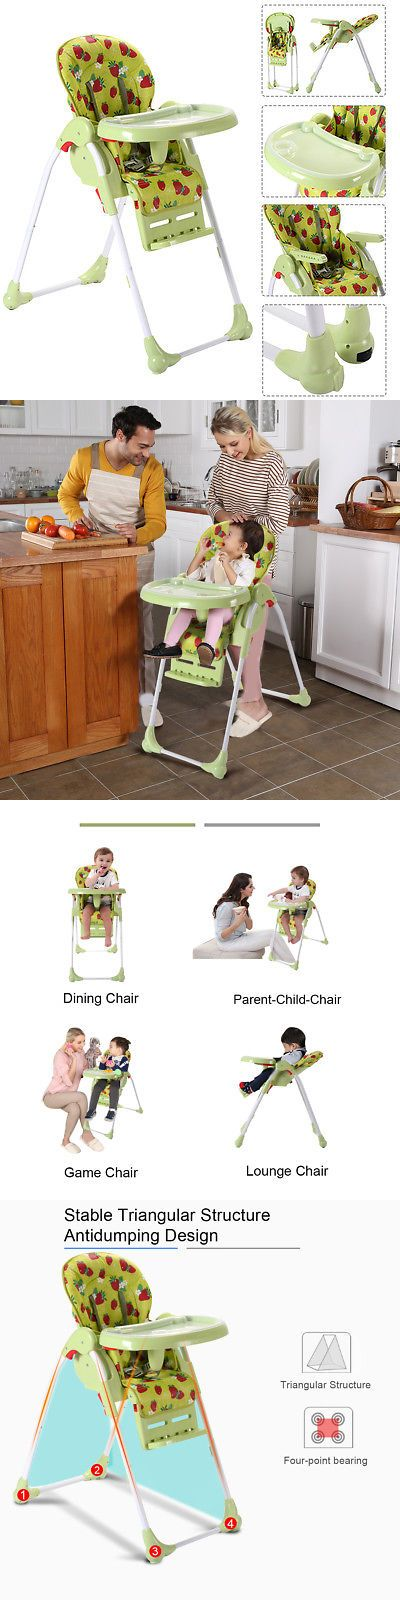 Best 25 High Chairs & Booster Seats Ideas On Pinterest  Baby Cool Booster Seat For Dining Room Chair 2018